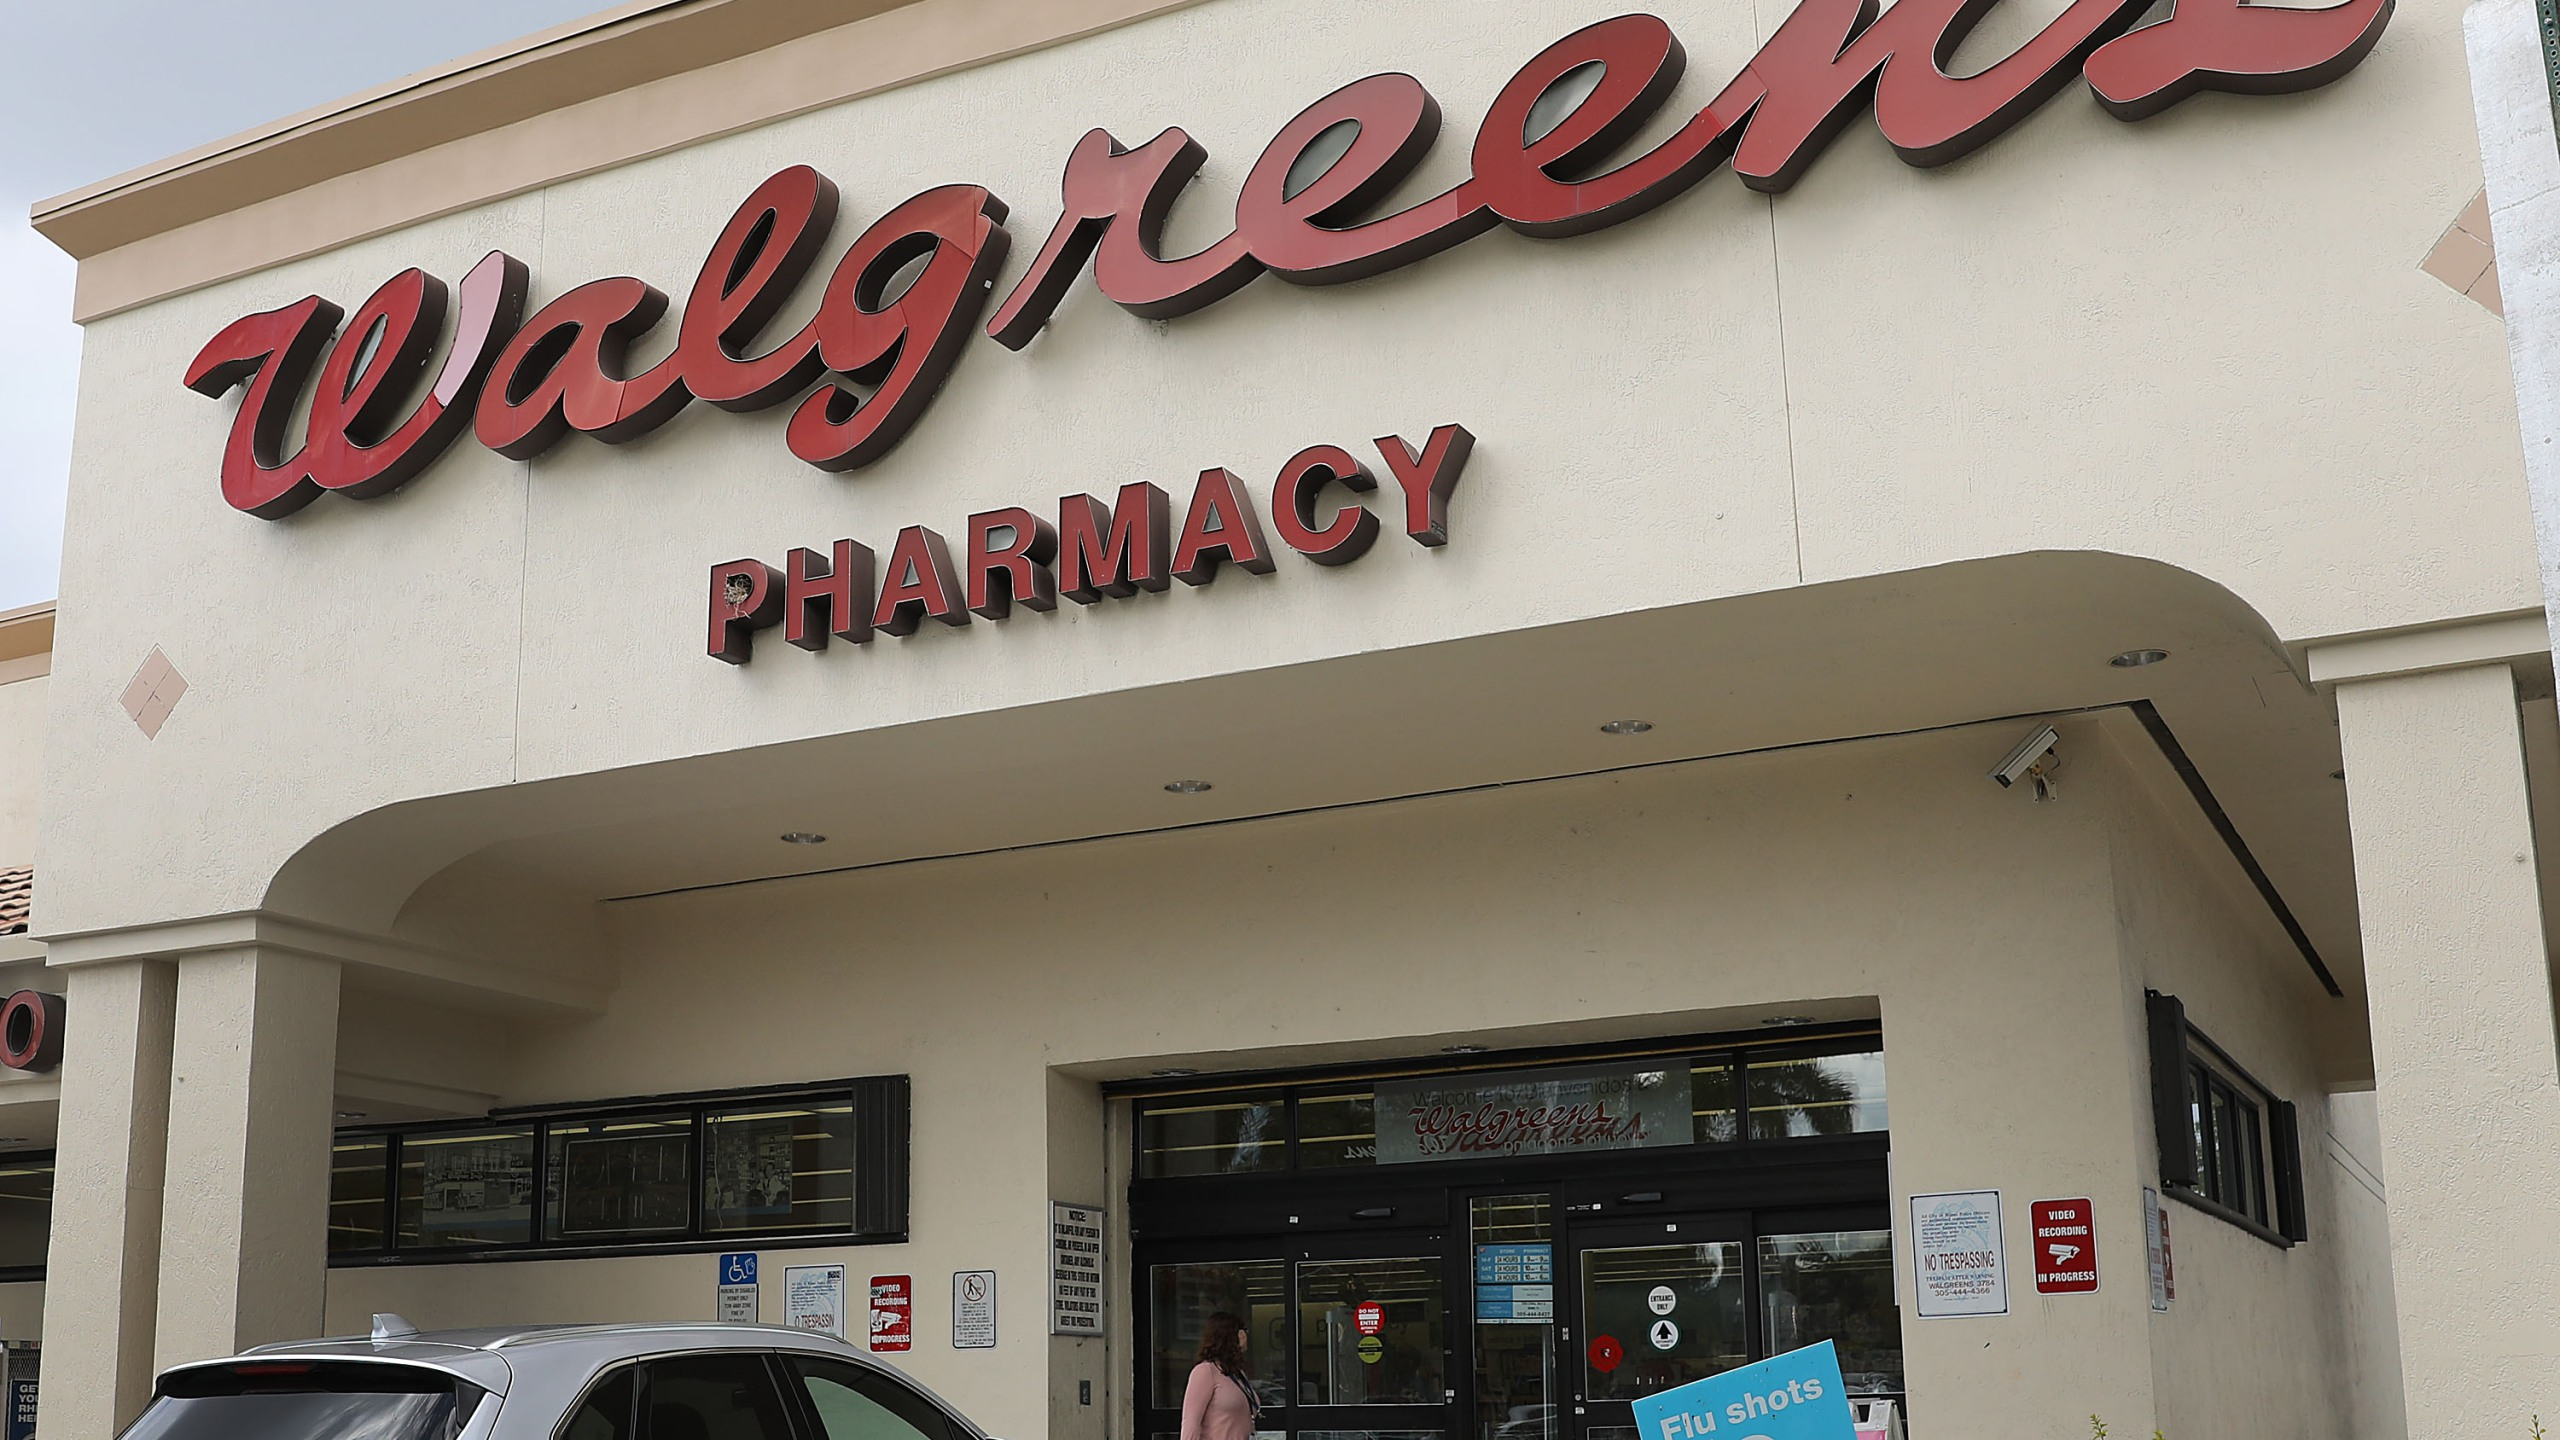 A Walgreens store is seen on April 2, 2019 in Miami, Florida. (Joe Raedle/Getty Images)